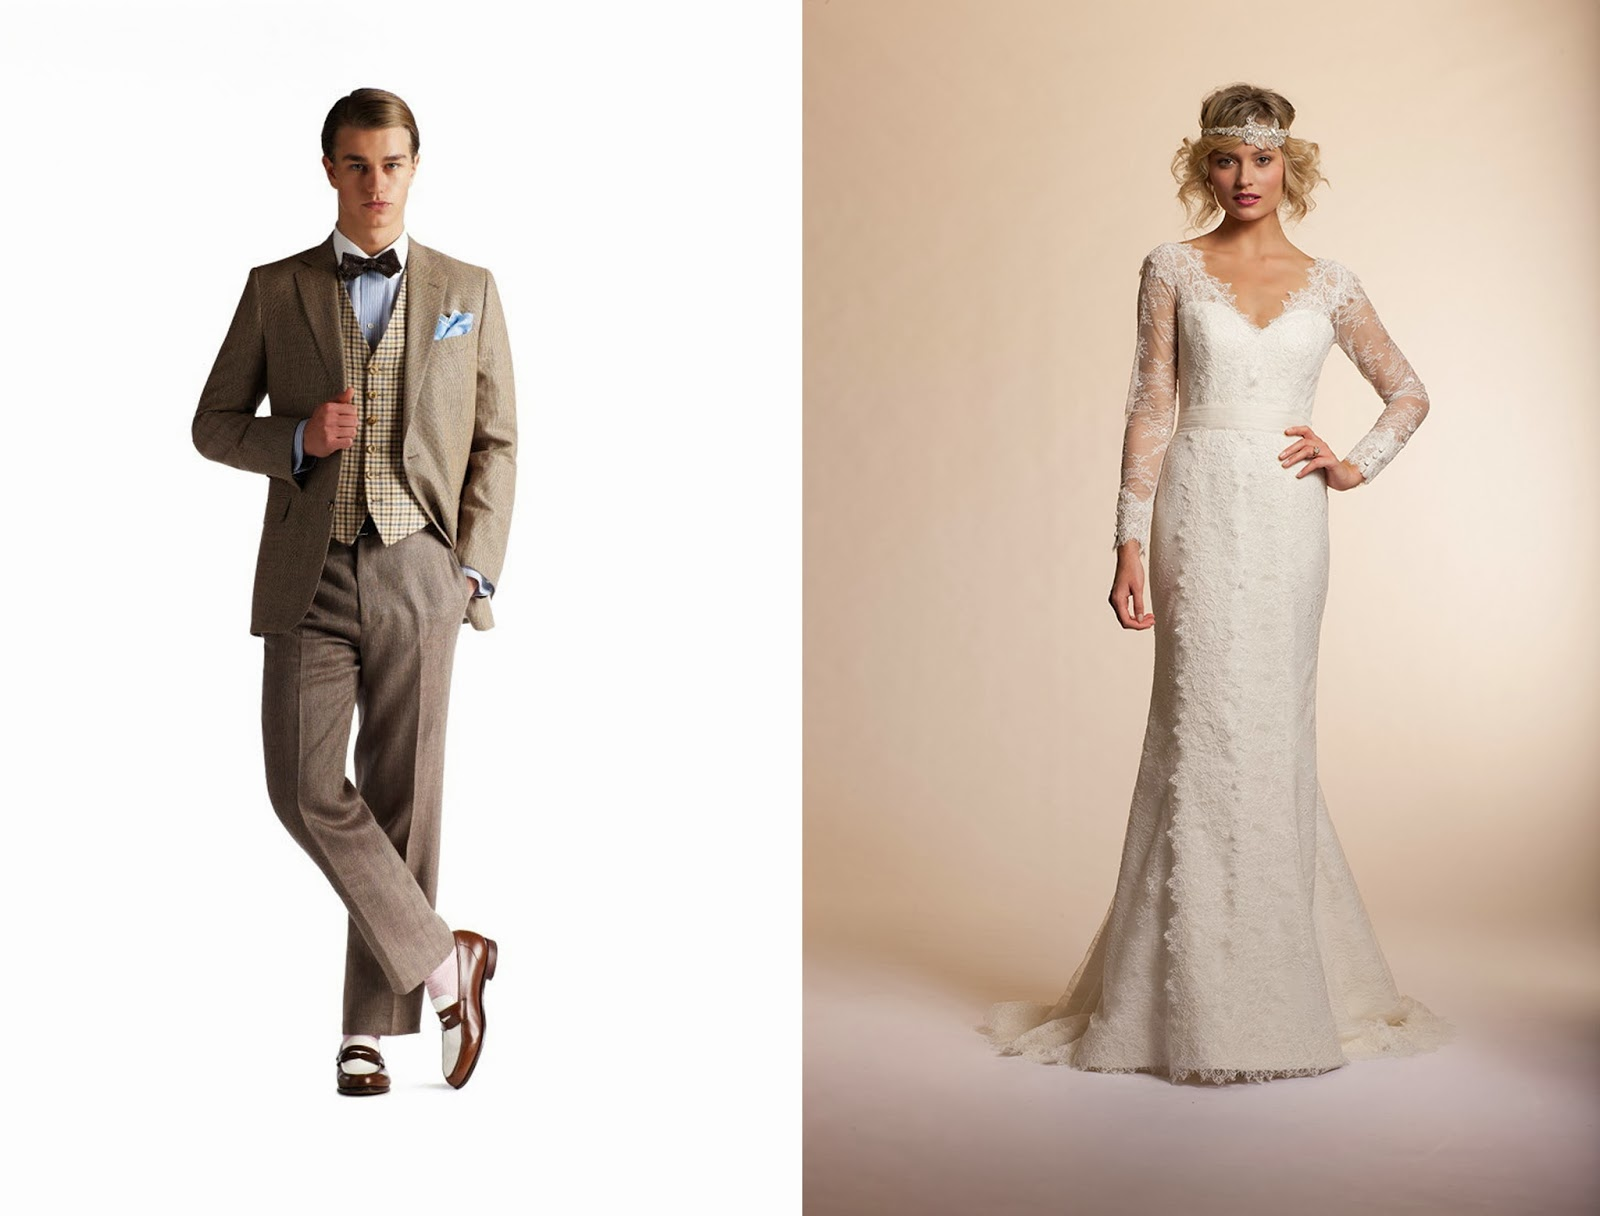 VIOLA PLAYS THE WORLD: Vintage Wedding Dress 1920-1970s